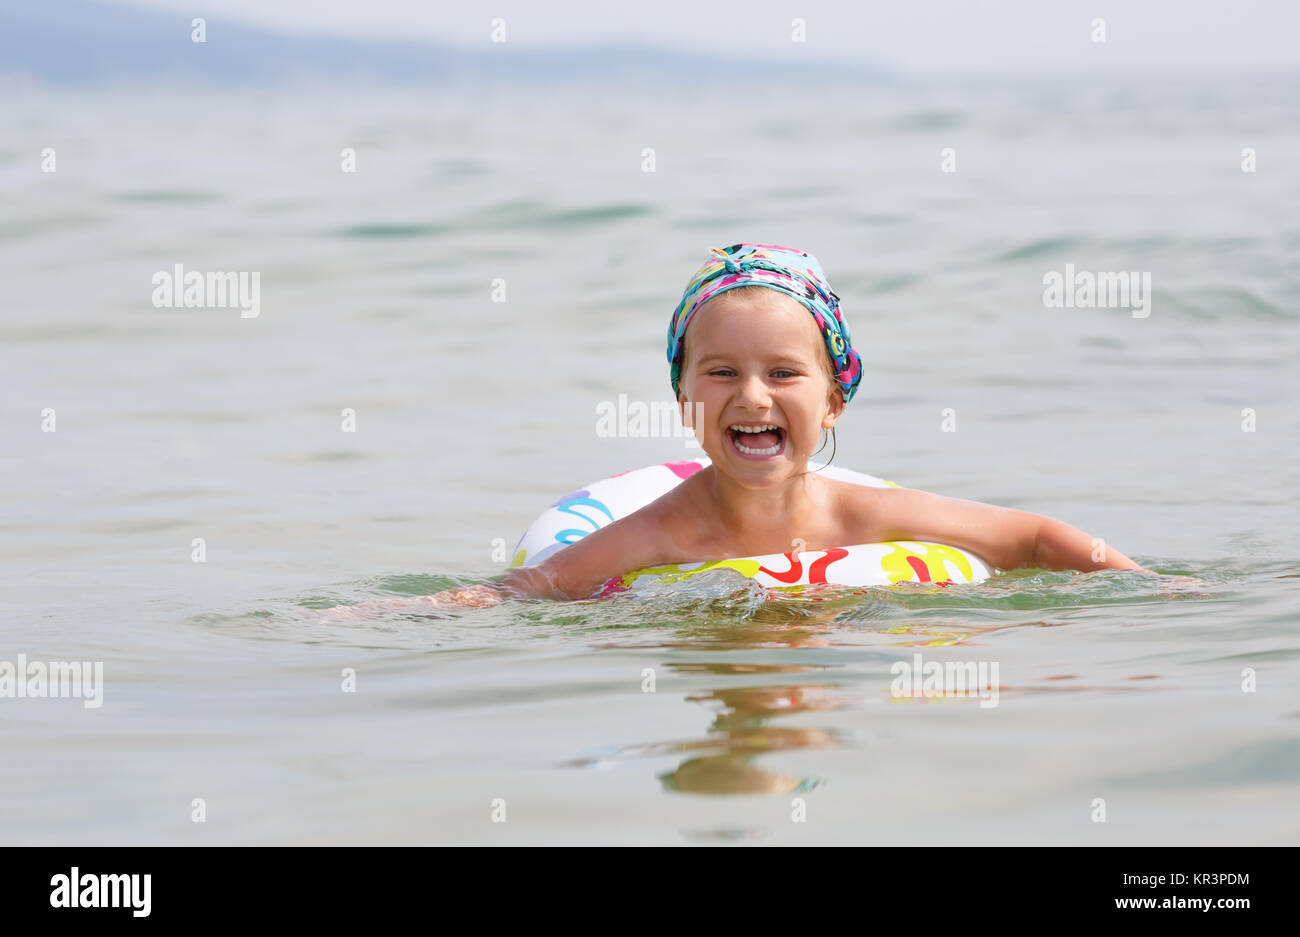 Child and sea - Stock Image